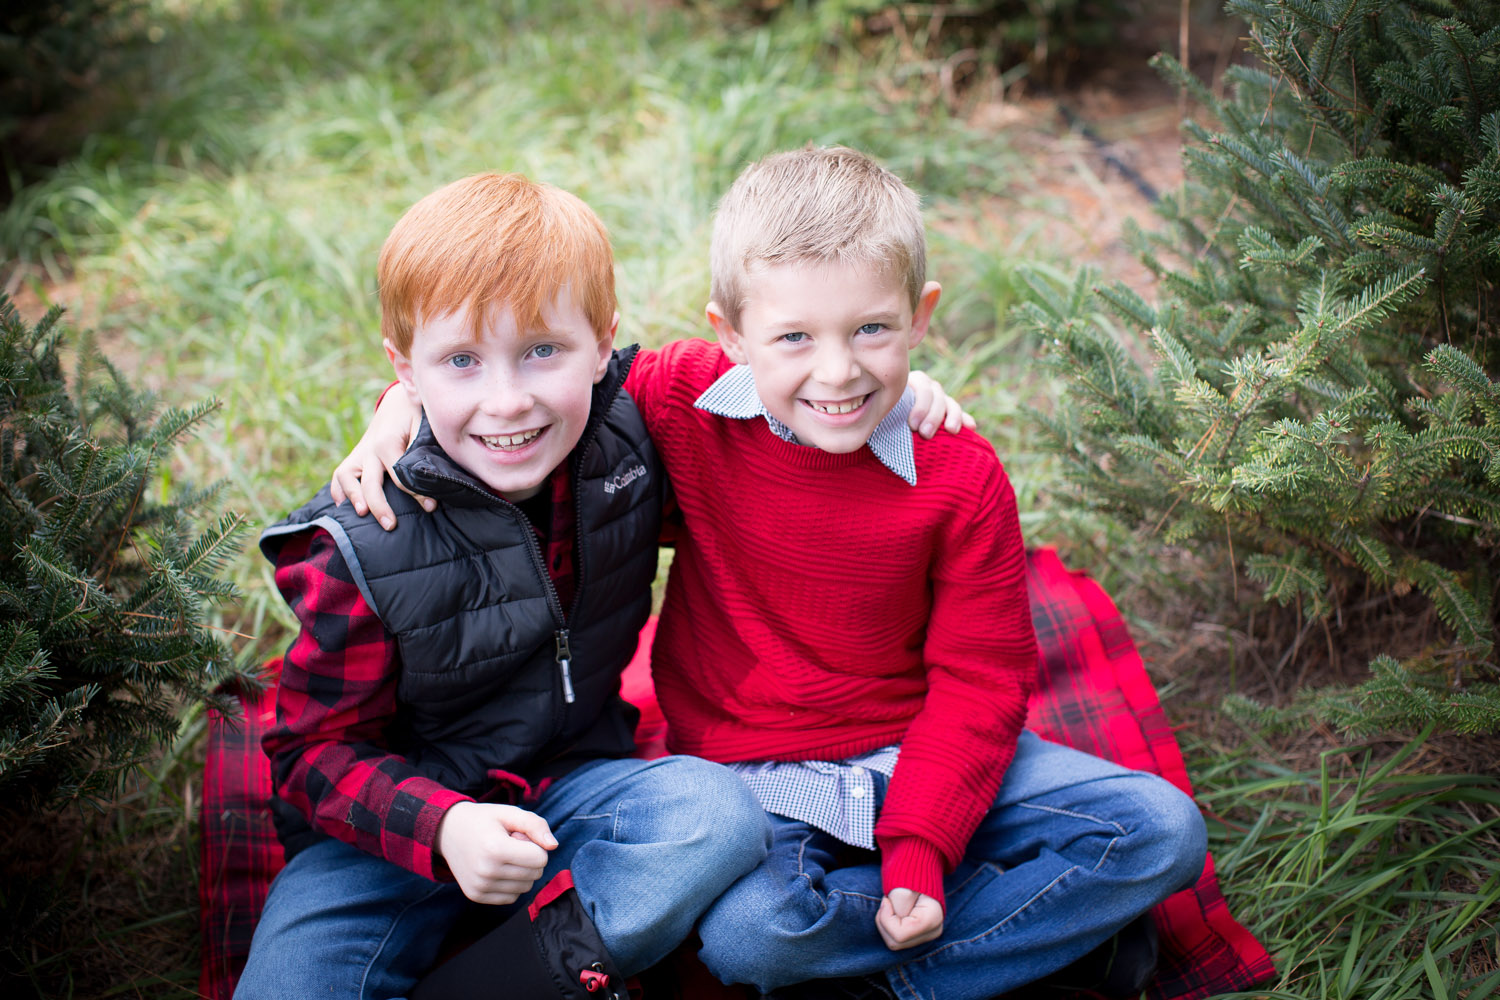 11-hansen-tree-farm-christmas-mini-sessions-minnesota-family-photographer-sweater-puffy-vest-red-plaid-festive-brothers-mahonen-photography.jpg